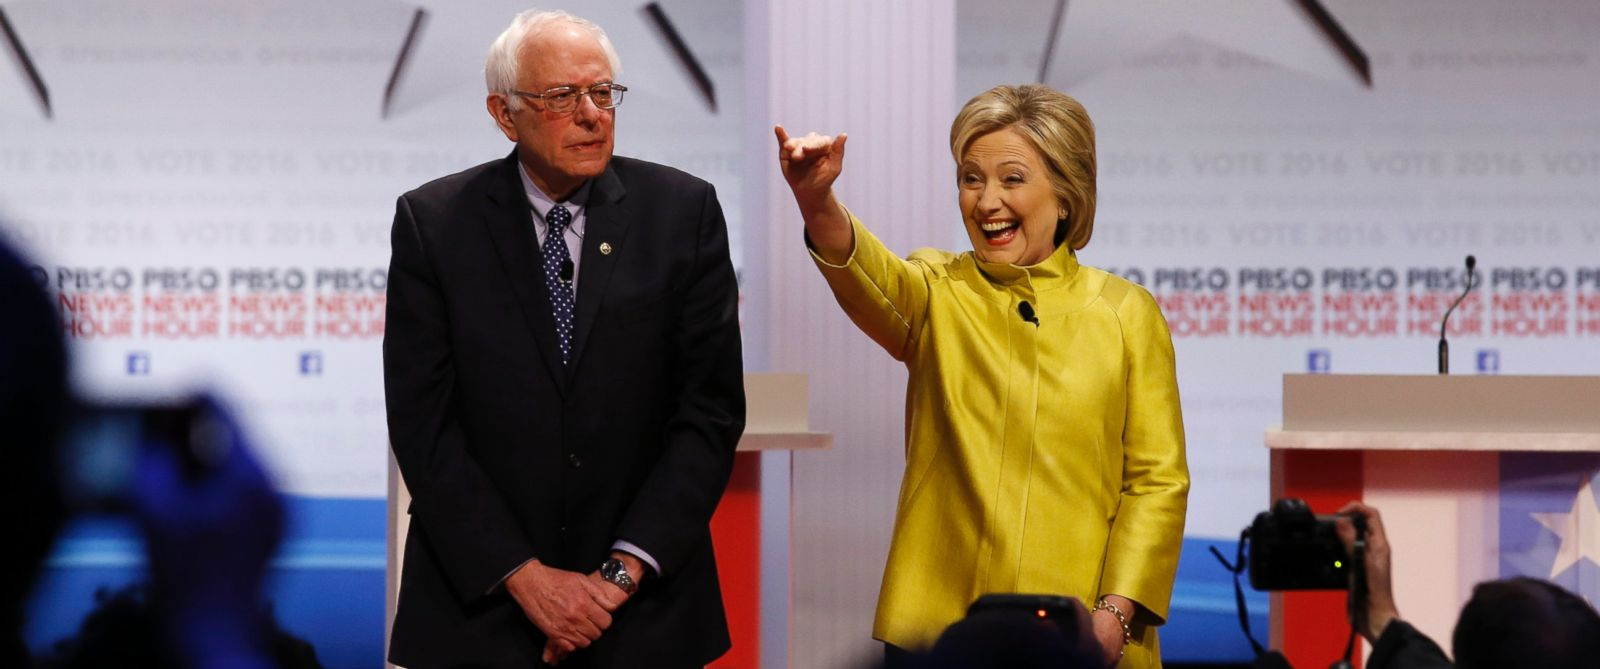 PHOTO: Democratic presidential candidates Sen. Bernie Sanders and Hillary Clinton take the stage before a Democratic presidential primary debate at the University of Wisconsin-Milwaukee on Feb. 11, 2016, in Milwaukee.